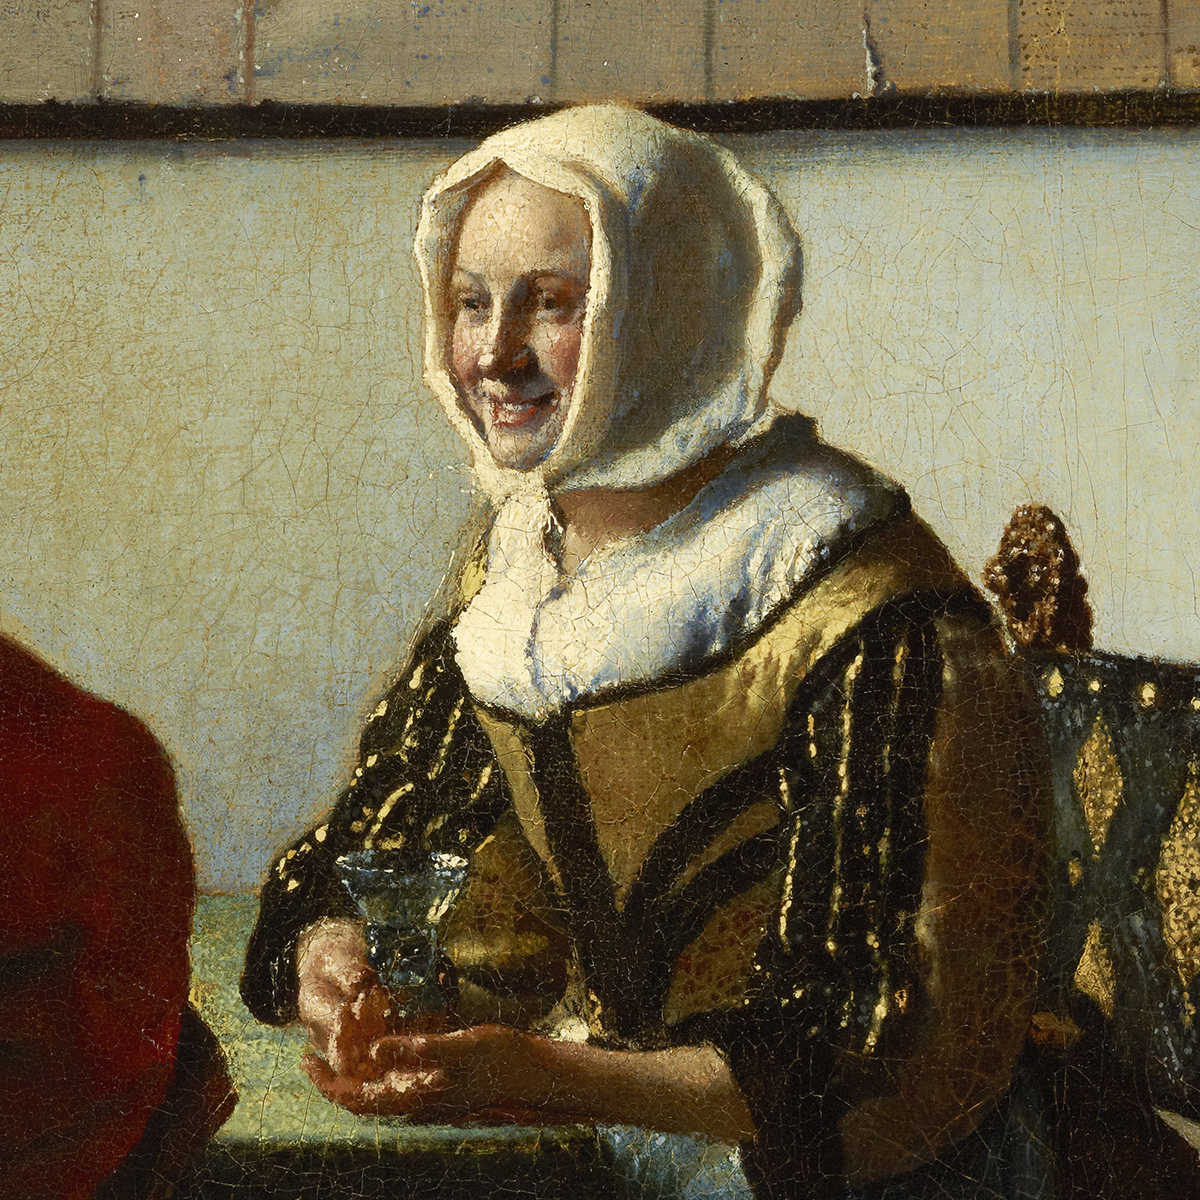 Oil painting of a laughing woman sitting at a table